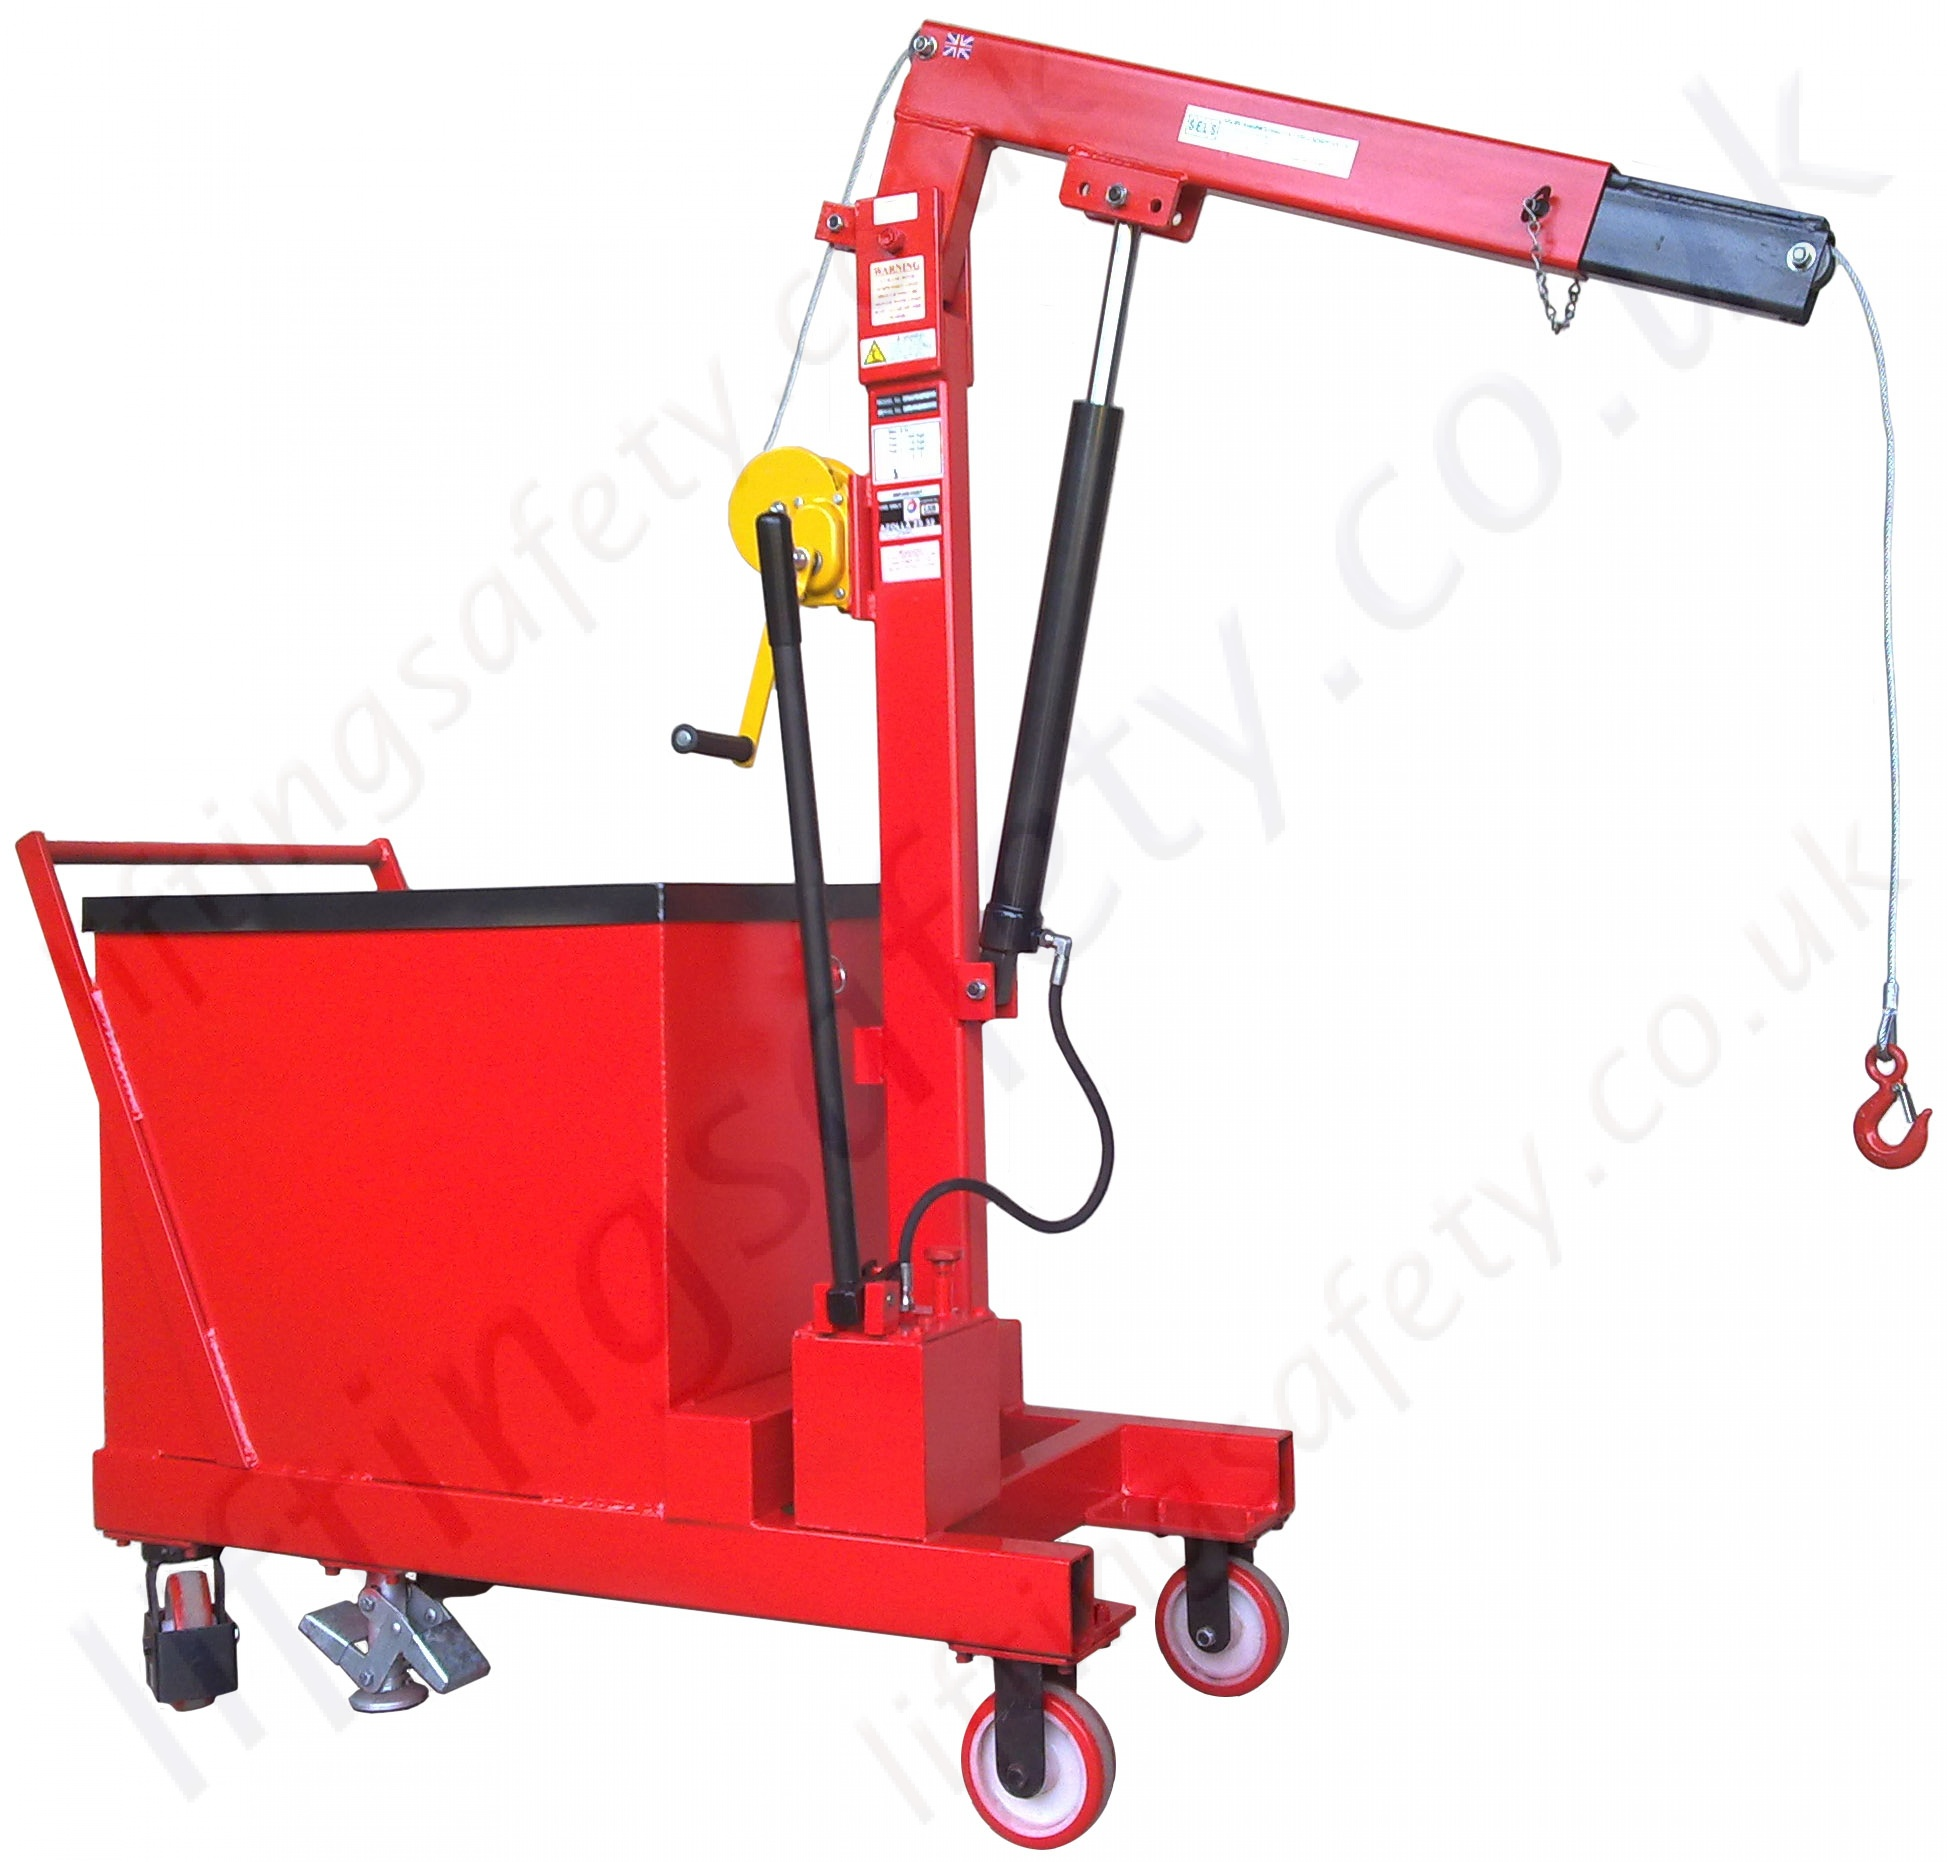 Portable Hydraulic Jib Crane : Kg counterbalance floor crane liftingsafety